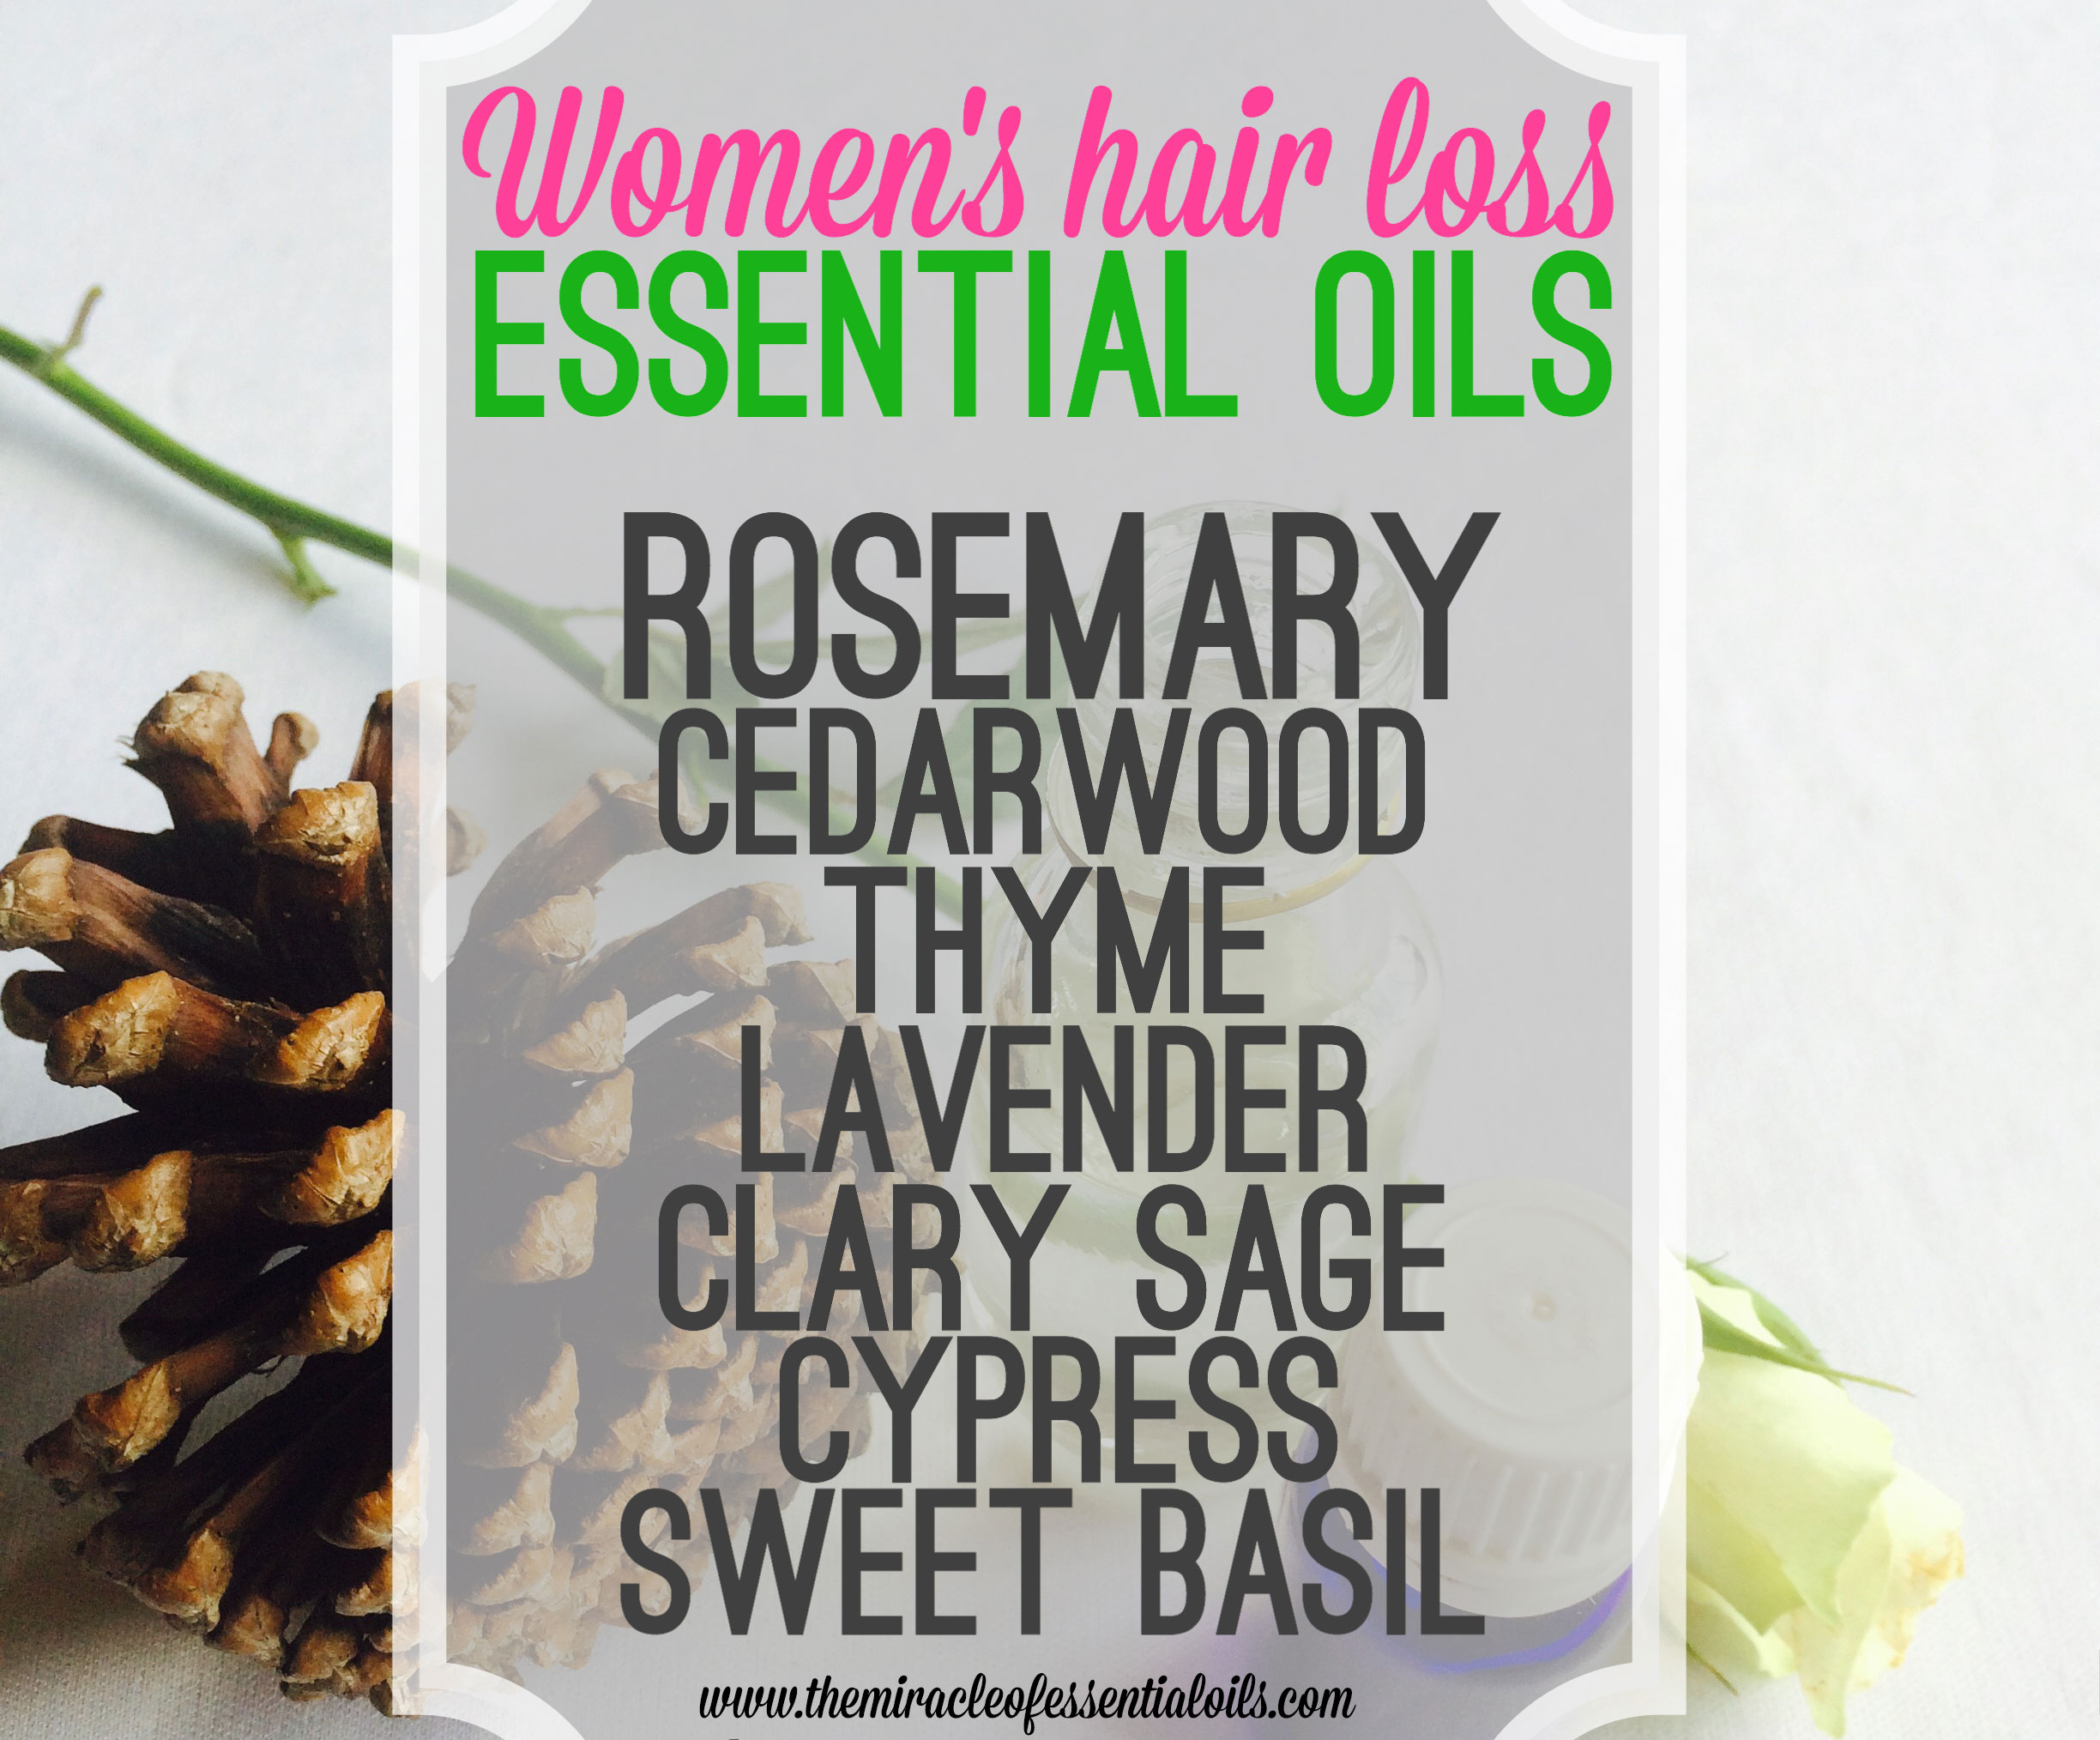 Essential Oils for Women's Hair Loss & How they Work as a Natural Remedy